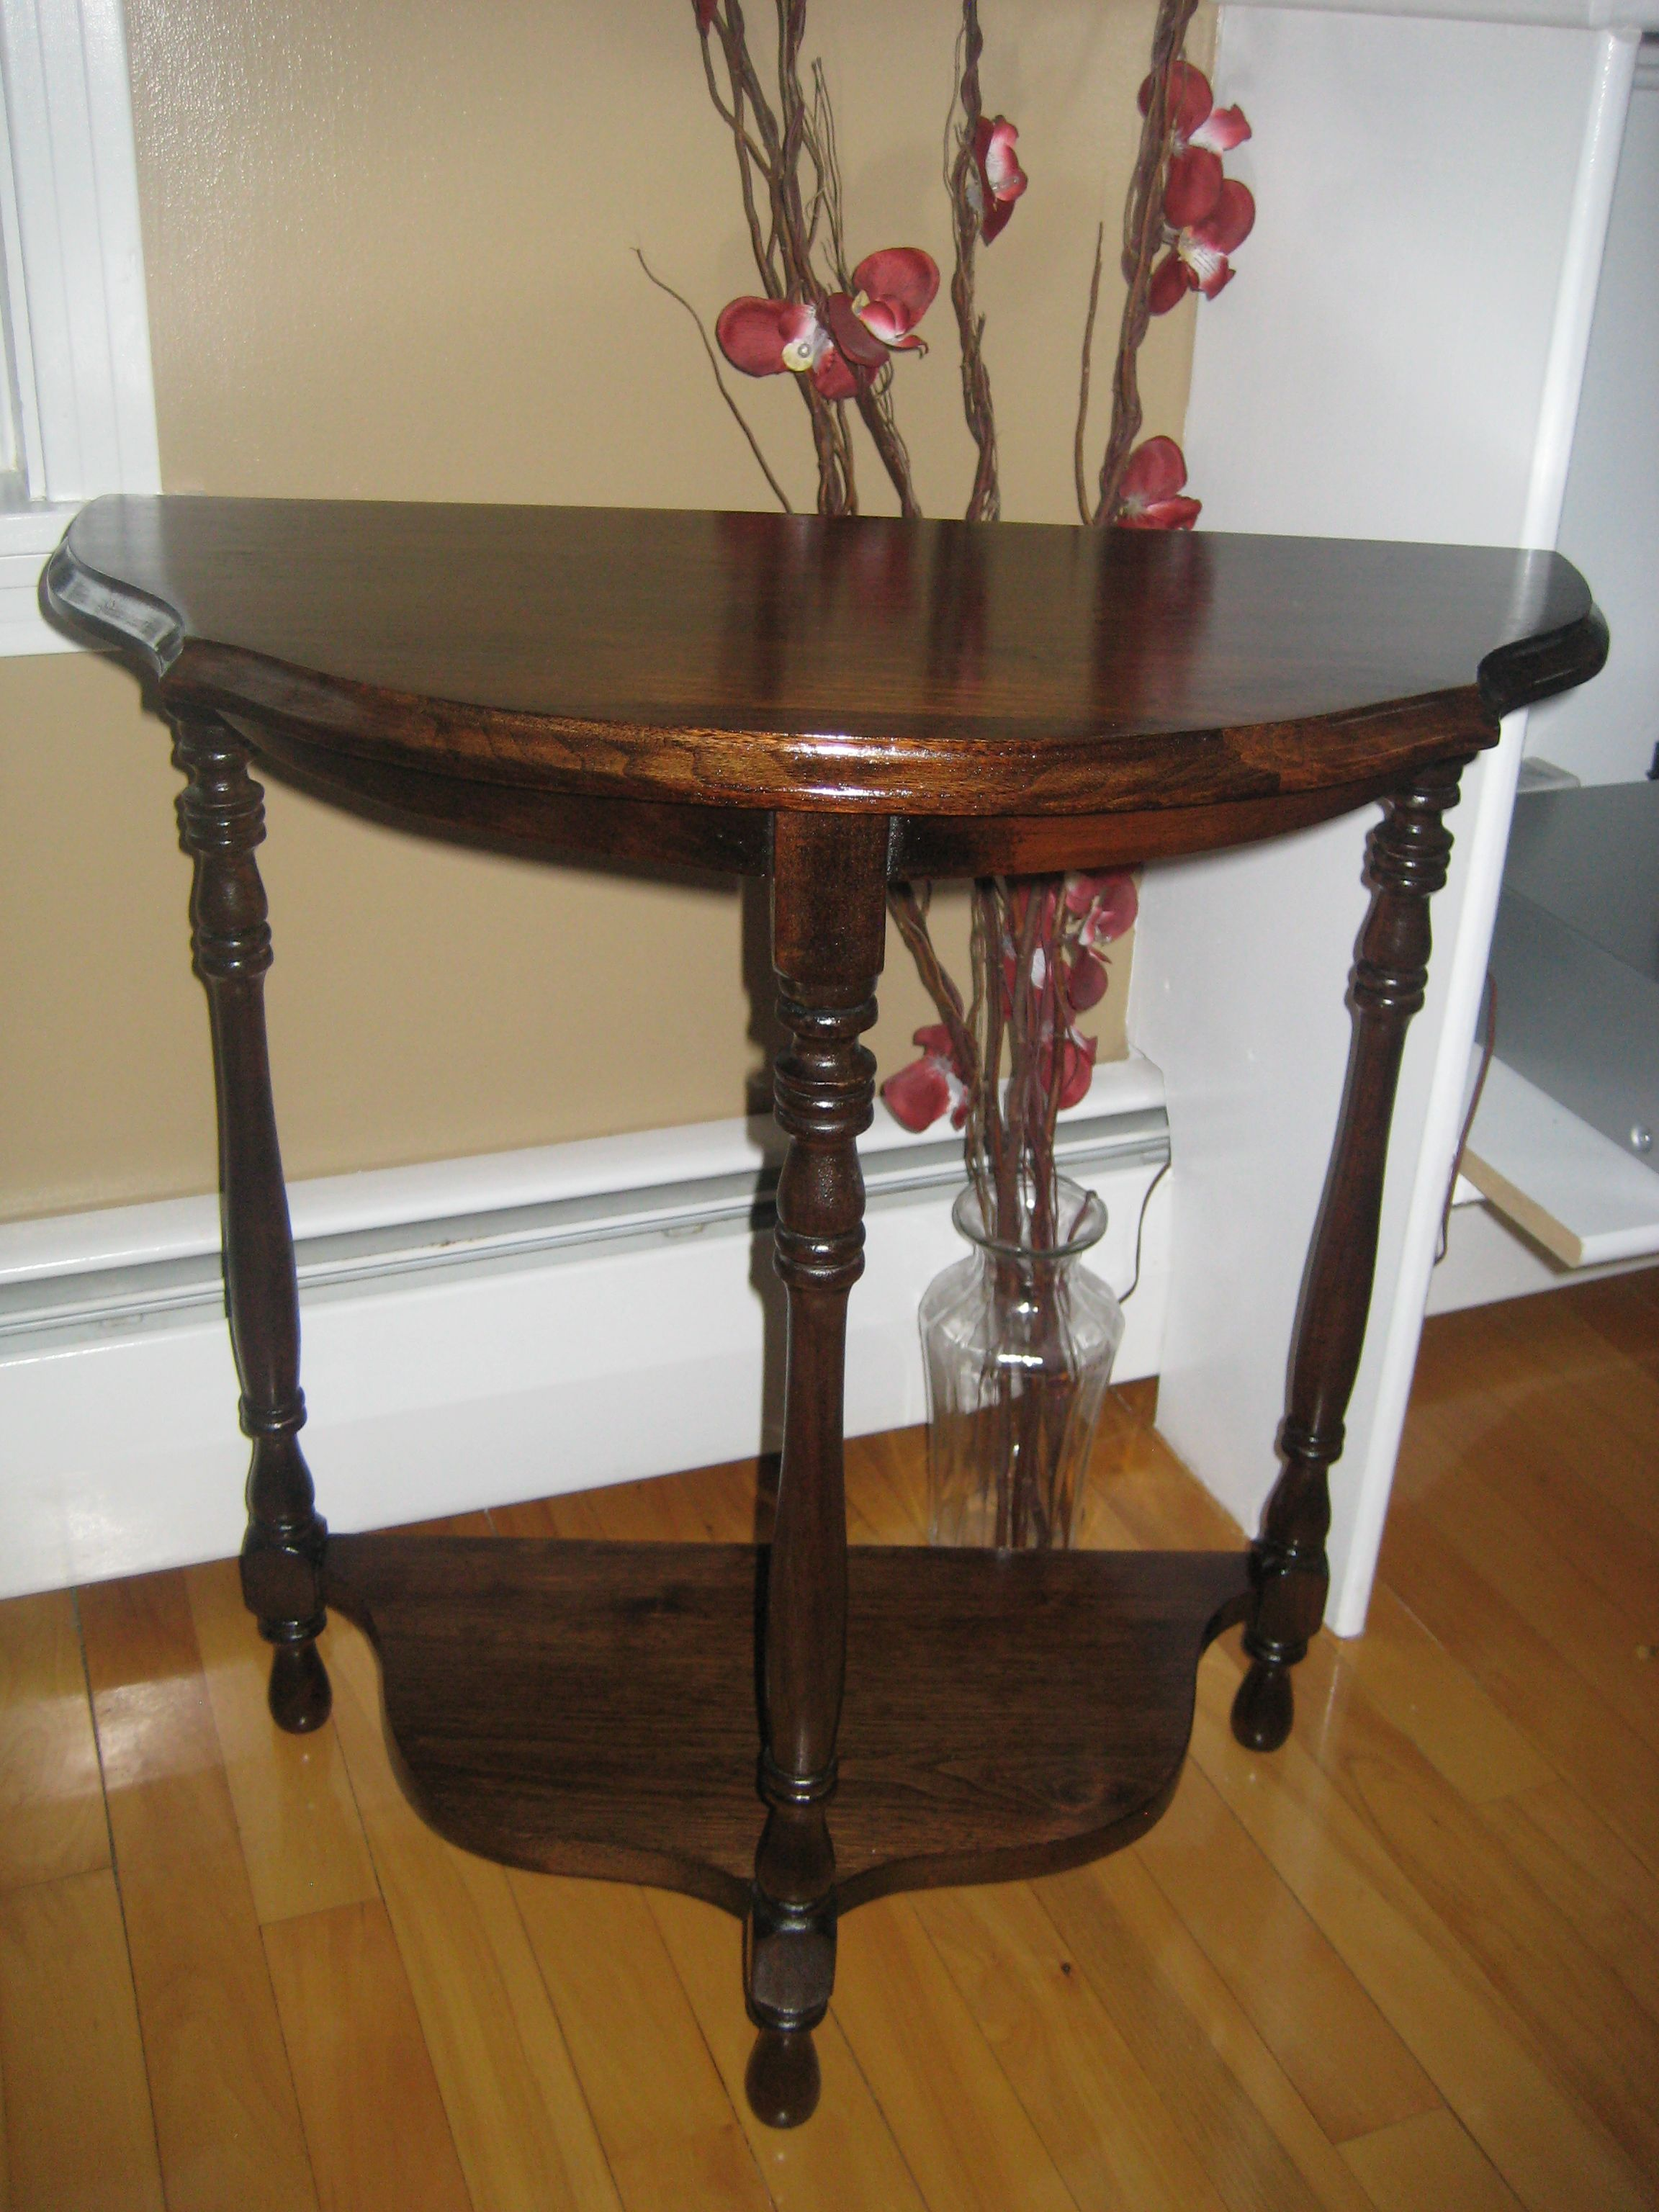 Refinished Half Moon Family Owned Vintage Table Circa 1930 S